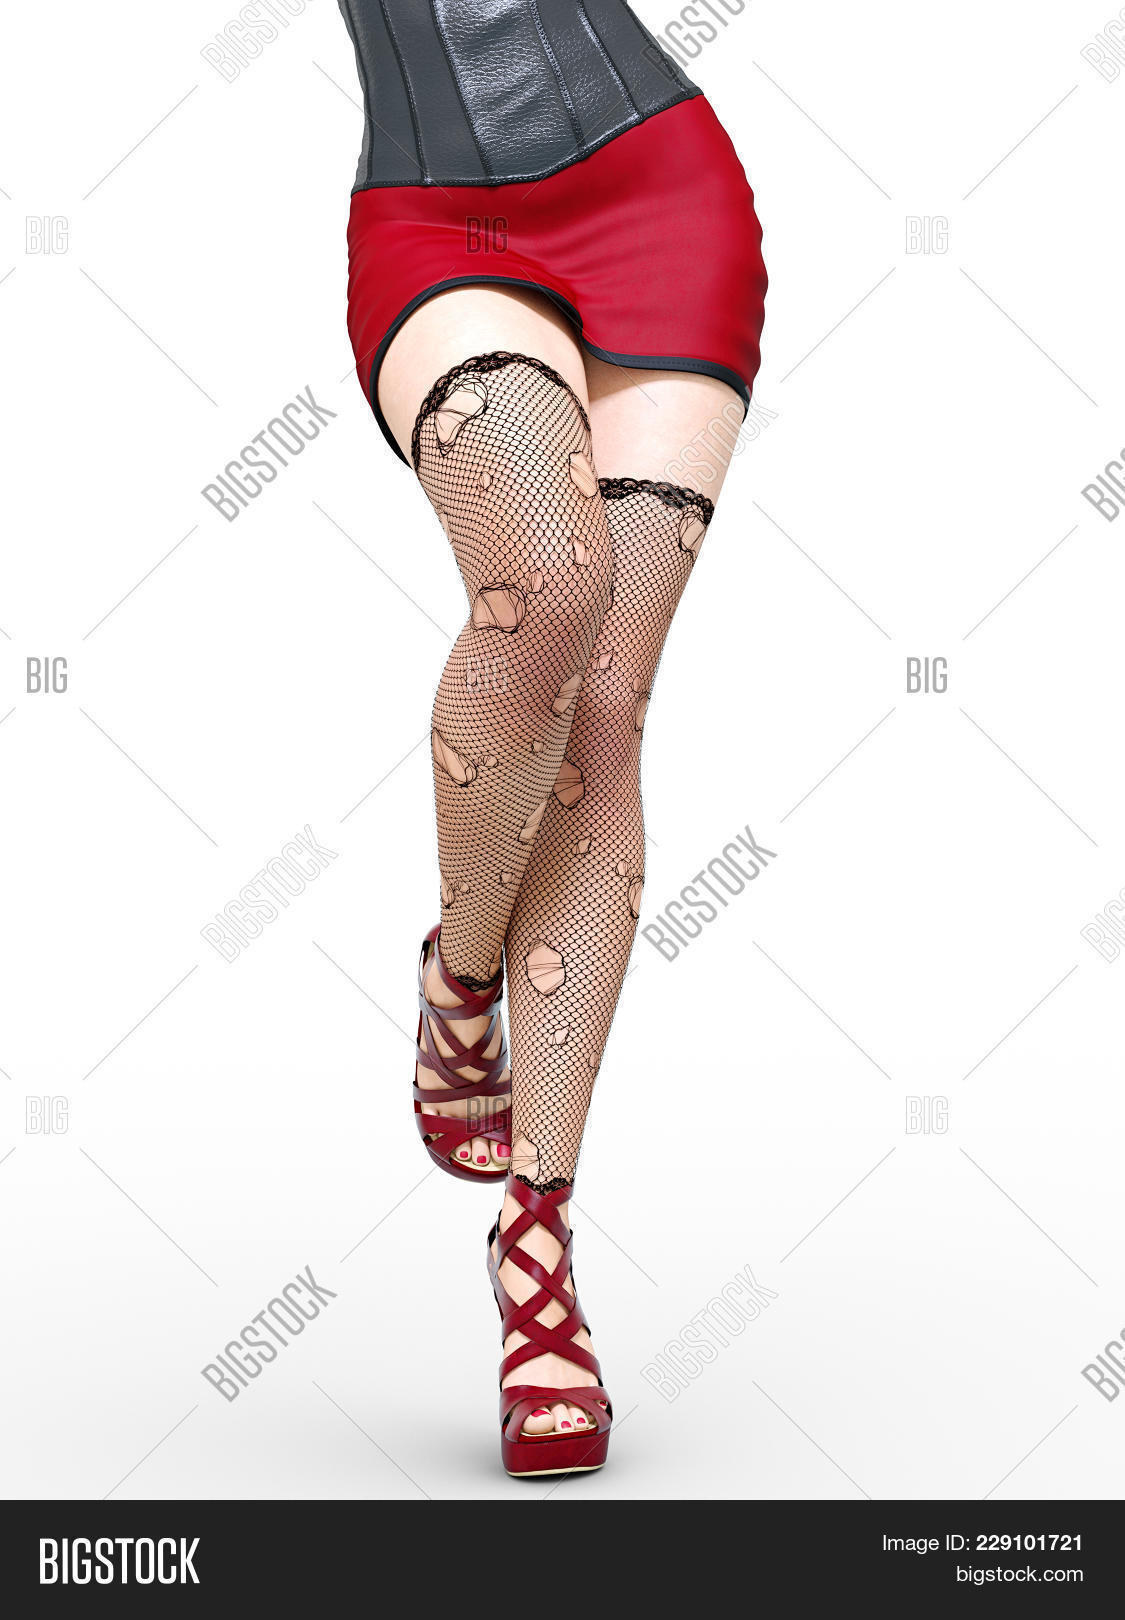 Matchless Sexy legs short skirts high heels have removed